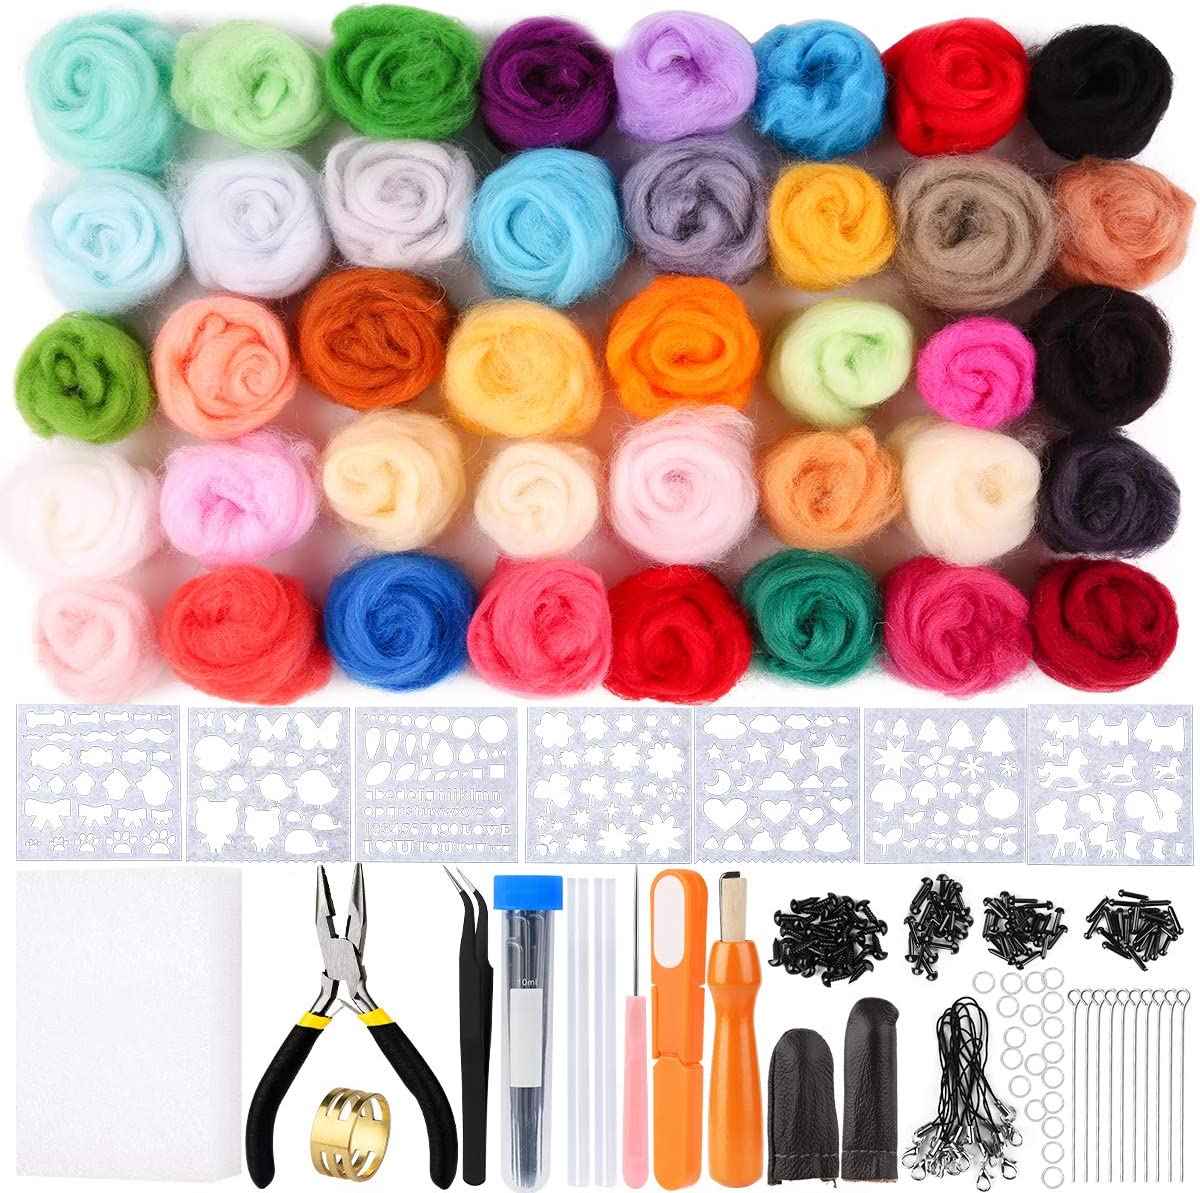 24-Color Wool Roving for Needle Felting with Felting Supplies and Storage Box Tools Needle Felting Kit for Beginners